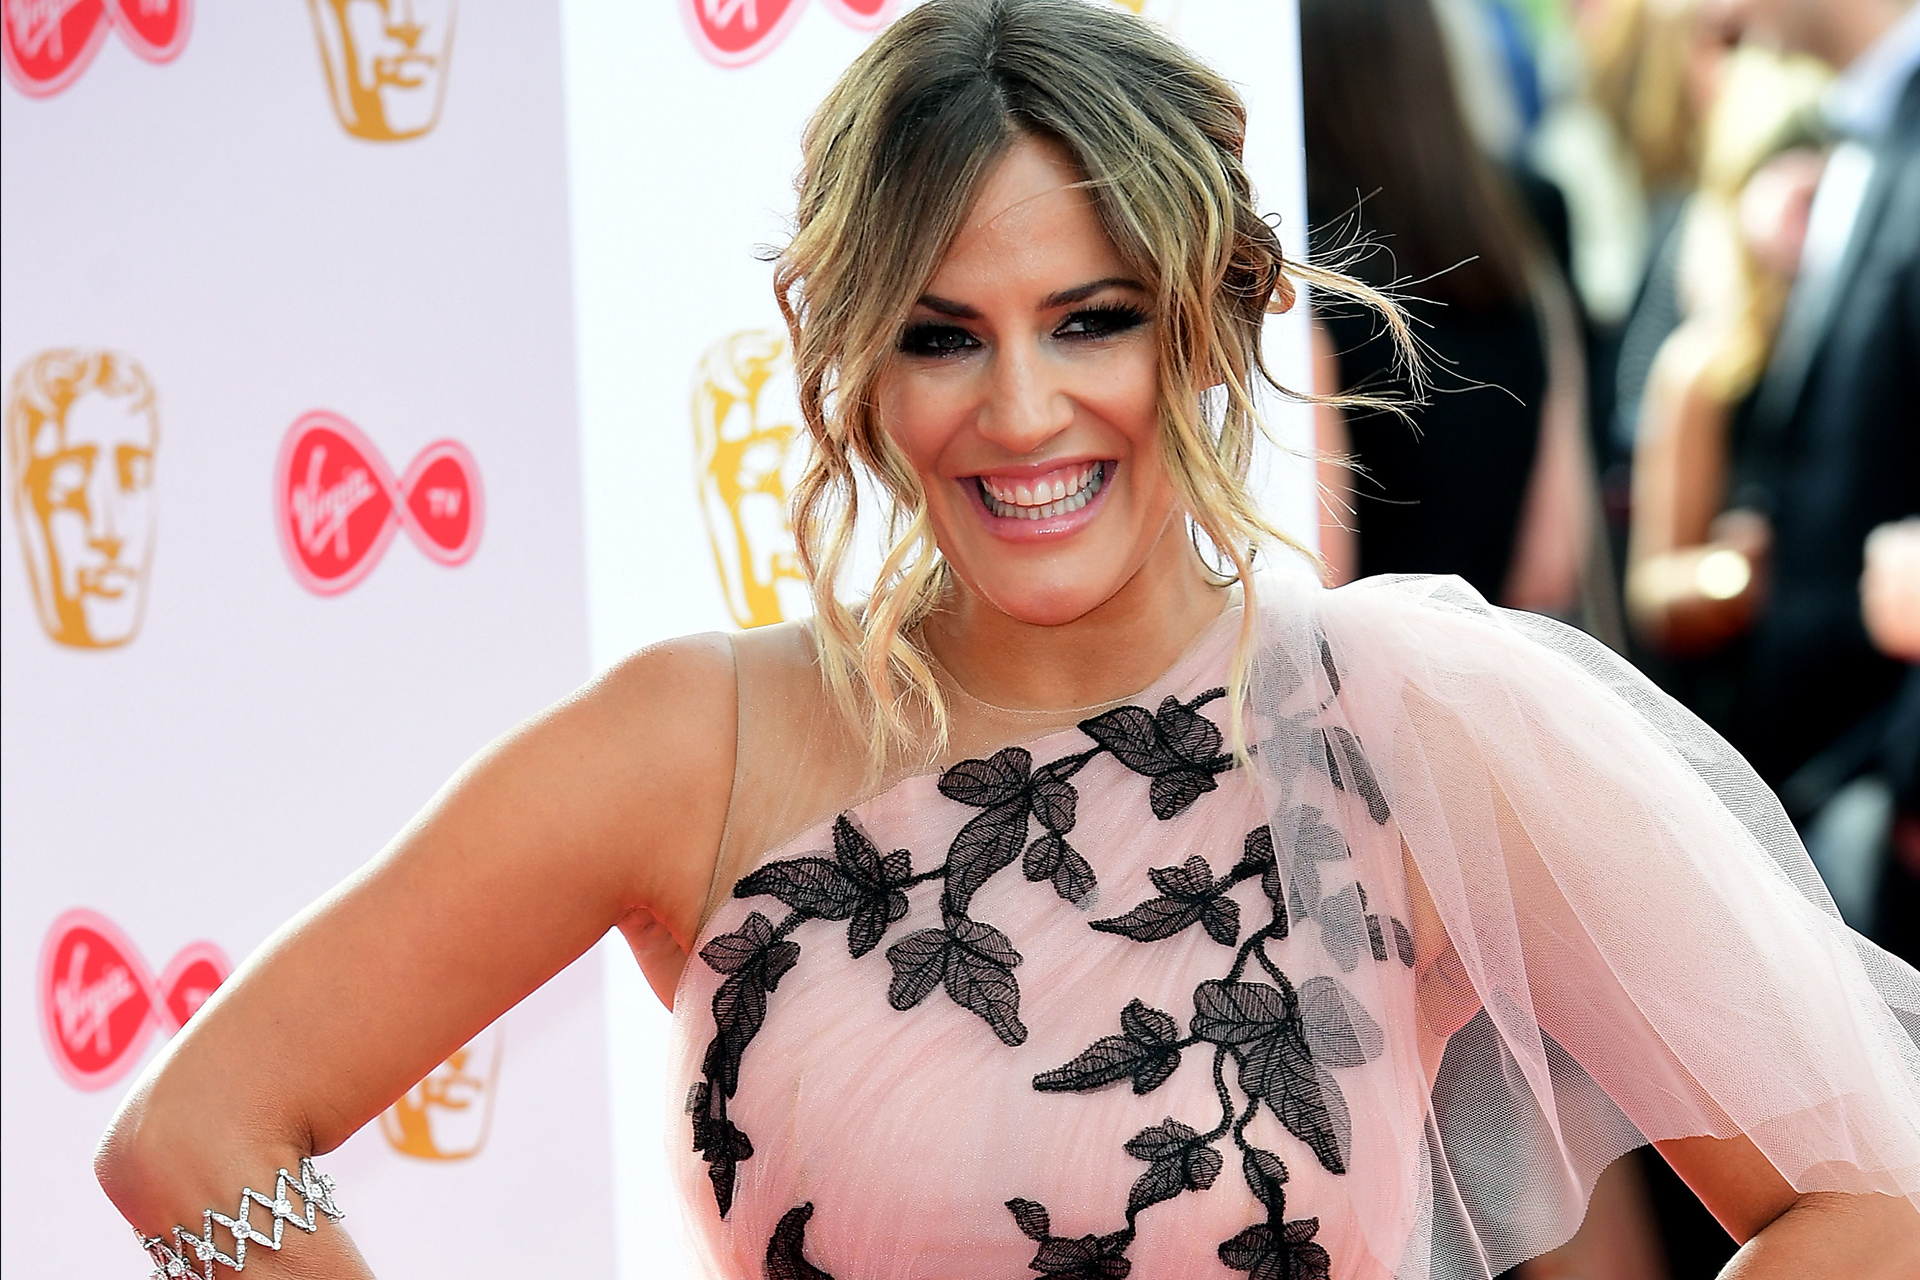 People Now: Coroner Rules on Why Love Island Host Caroline Flack Took Her Own Life - Watch the Full Episode